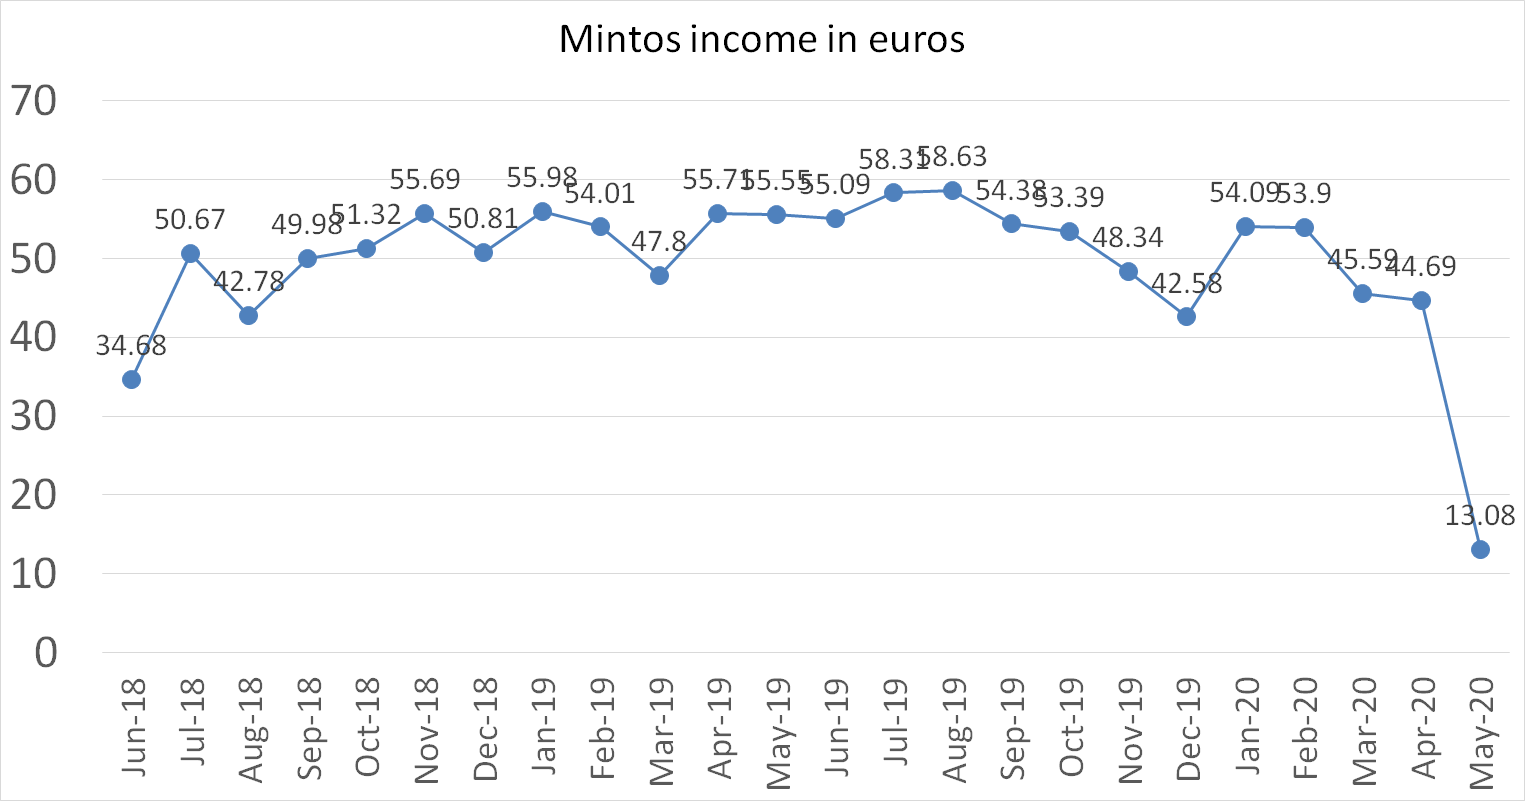 Mintos interest income in euros may 2020